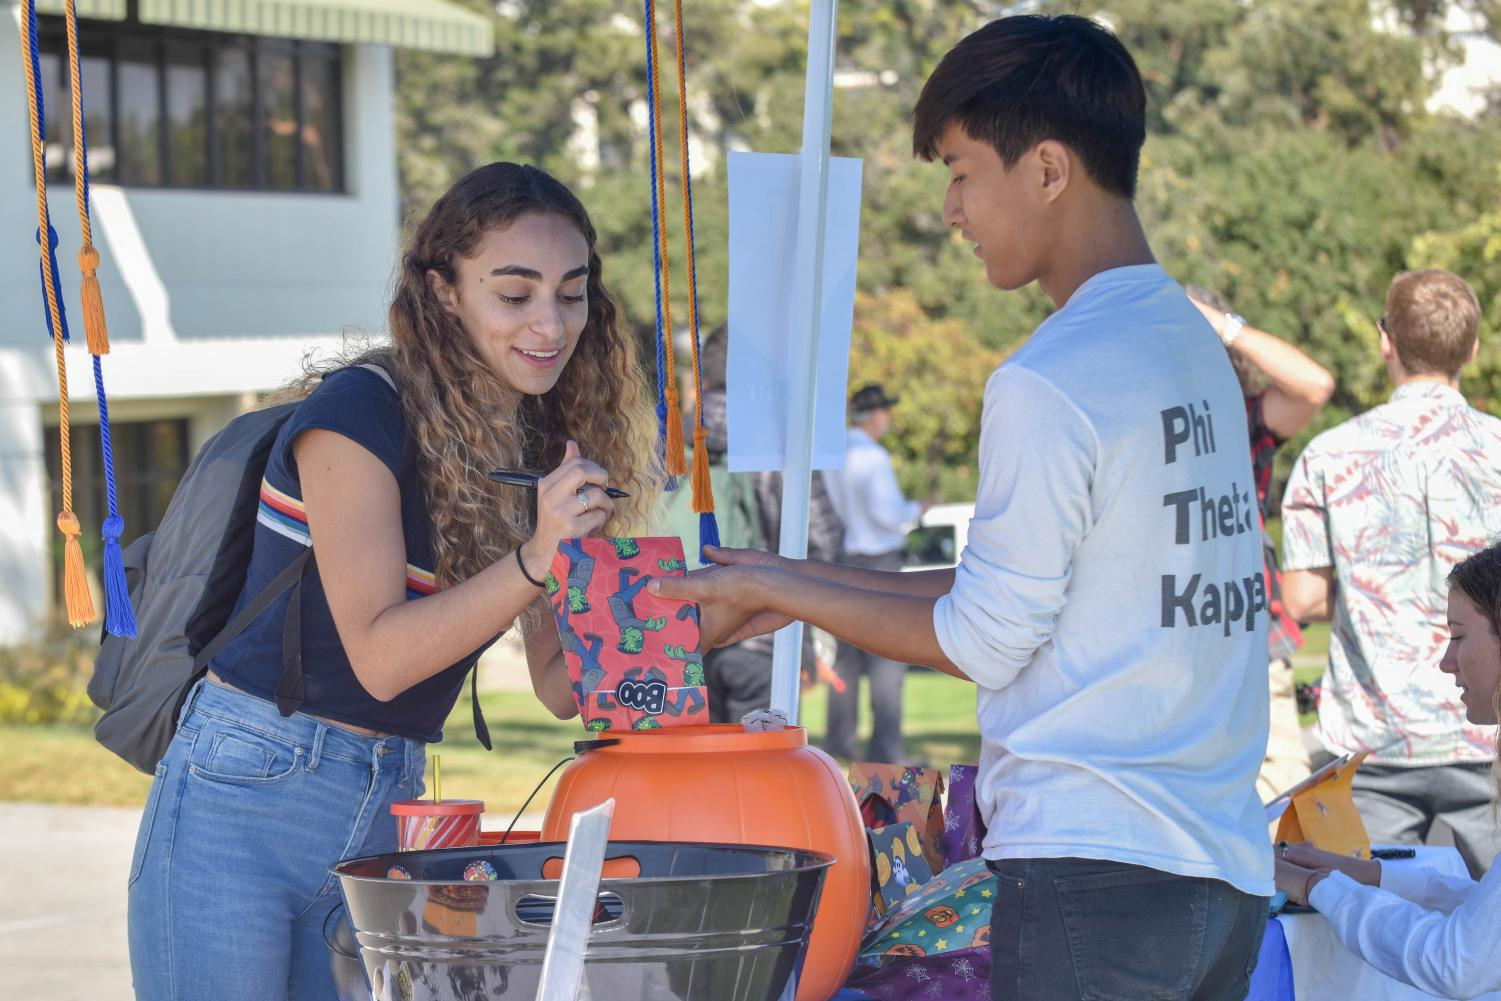 Newara Brosan-Faltas addresses a candy bag with the help of Christopher Lee, Phi Theta Kappa president, for the Phi Theta Kappa Trick or Treat fundraiser on Thursday Oct. 24, 2018, at City College in Santa Barbara Calif. All of the fundraiser proceeds will be donated to the Alzheimer's Foundation.